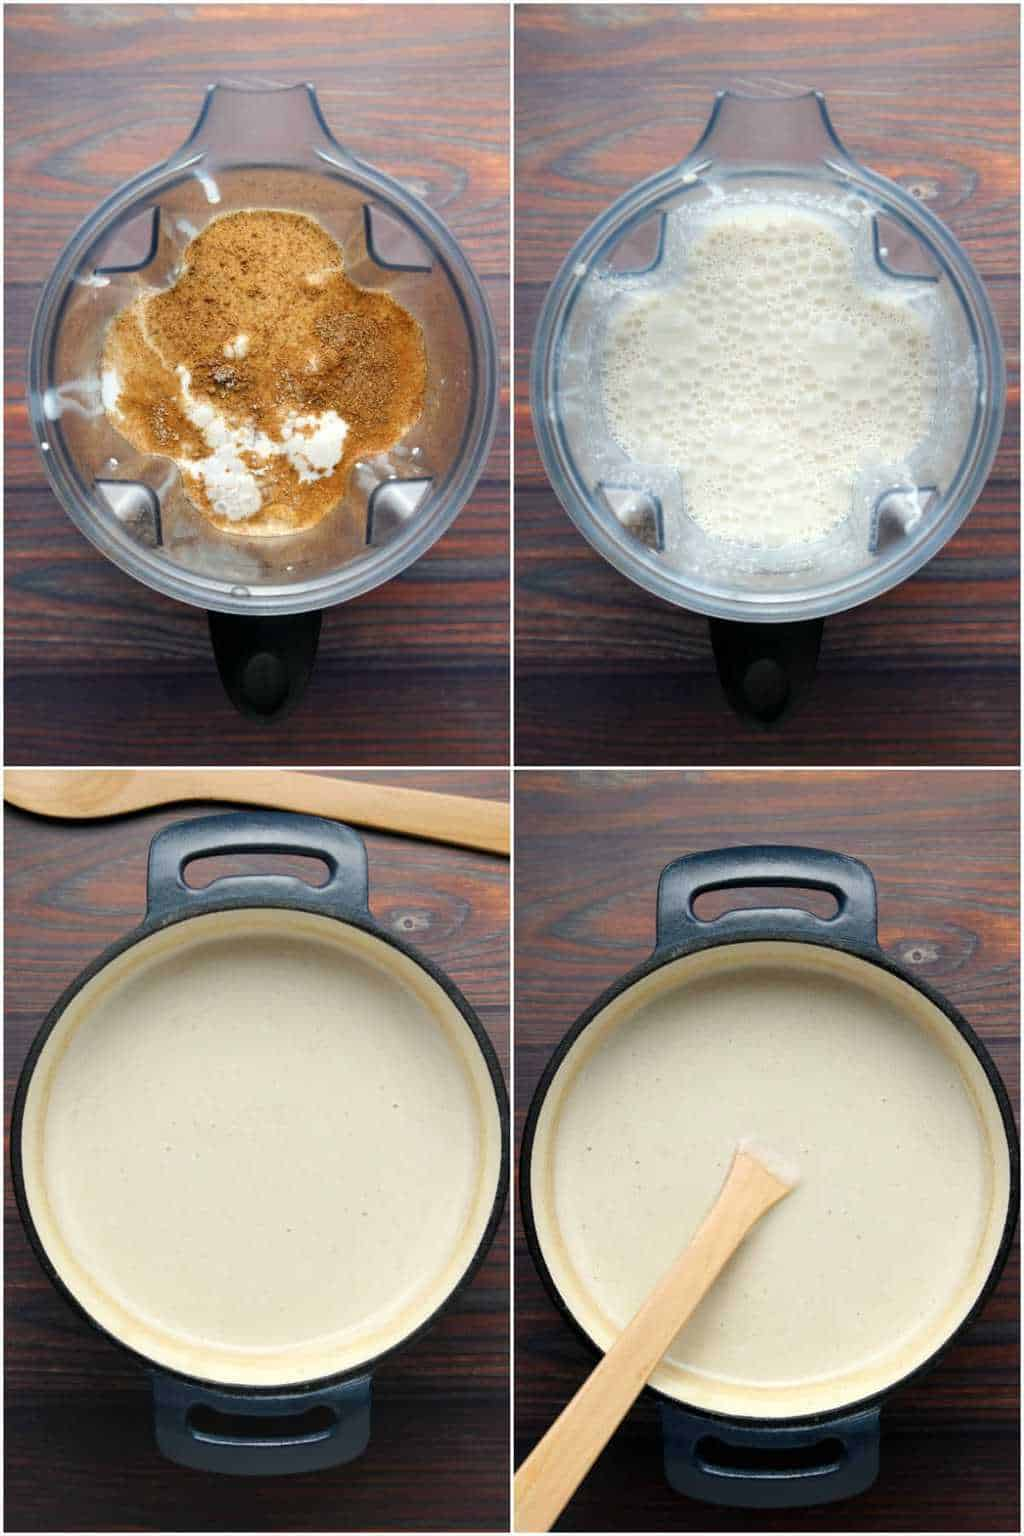 Step by step photo collage of making vegan eggnog.